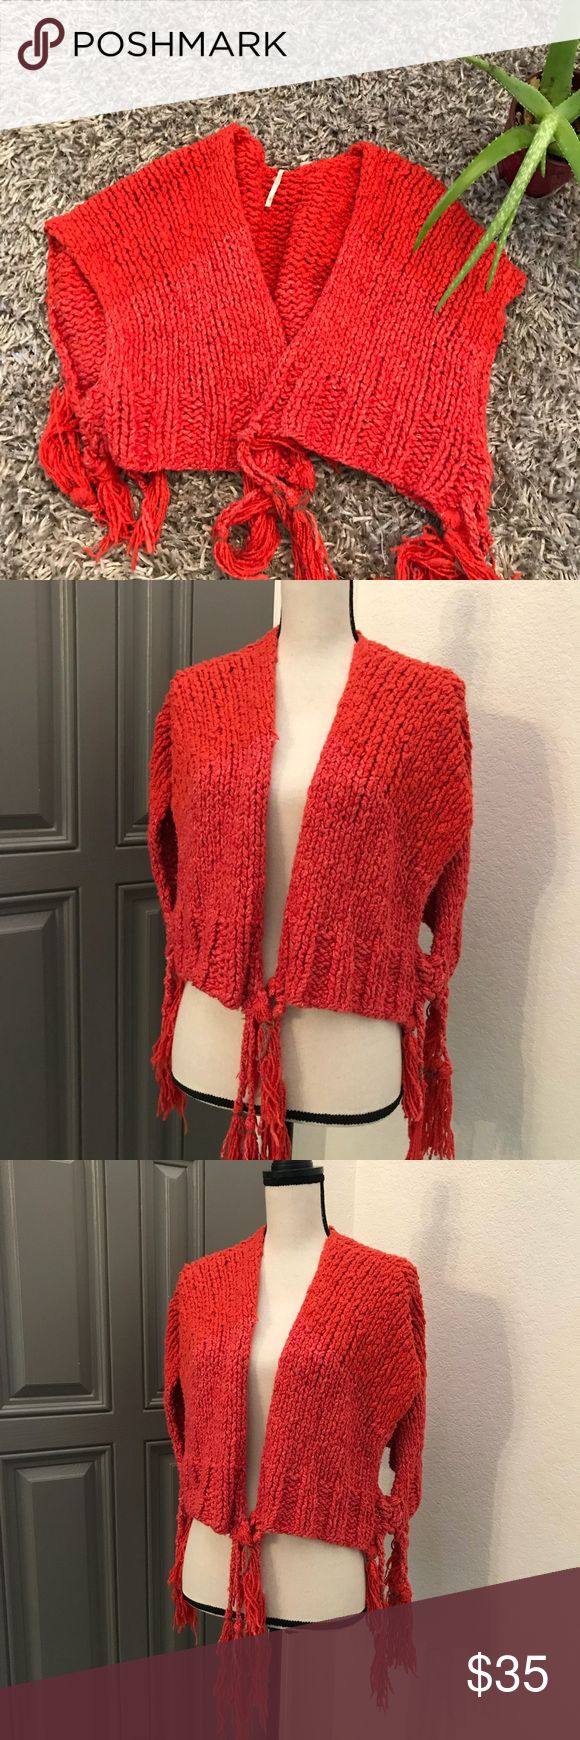 """Free People Cozy Sweater Fringed Vest Chunky Knit 1️⃣5️⃣ Women's large  Orange (burnt) color  Awesome fringed tassels  Gently worn  Length is 16"""" Width varied with how you Wear it but laying flat about 27"""" Free People Sweaters Shrugs & Ponchos"""